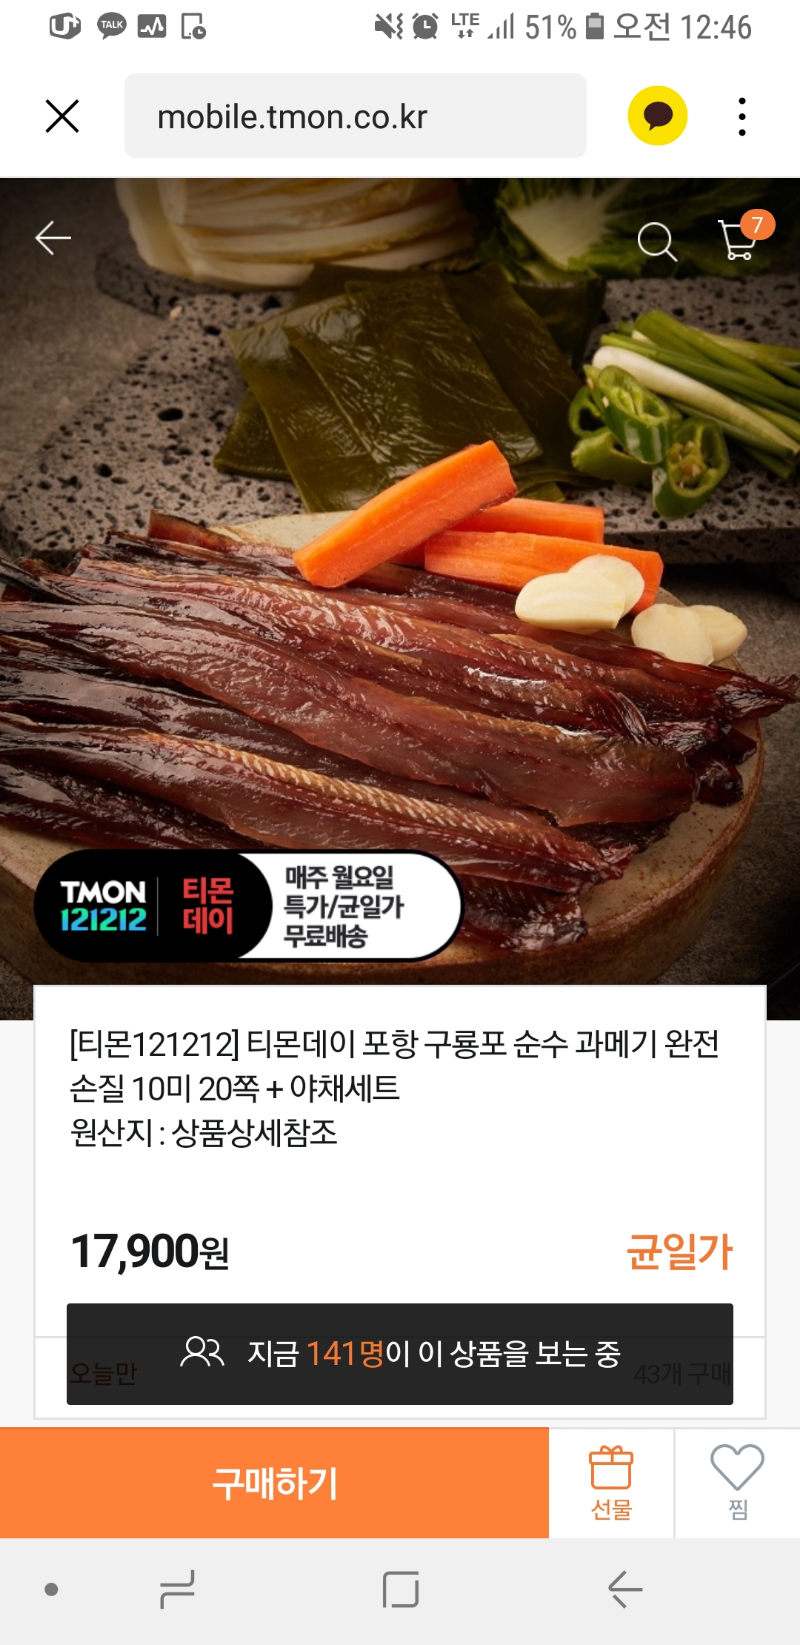 Screenshot_20191209-004632_KakaoTalk.jpg